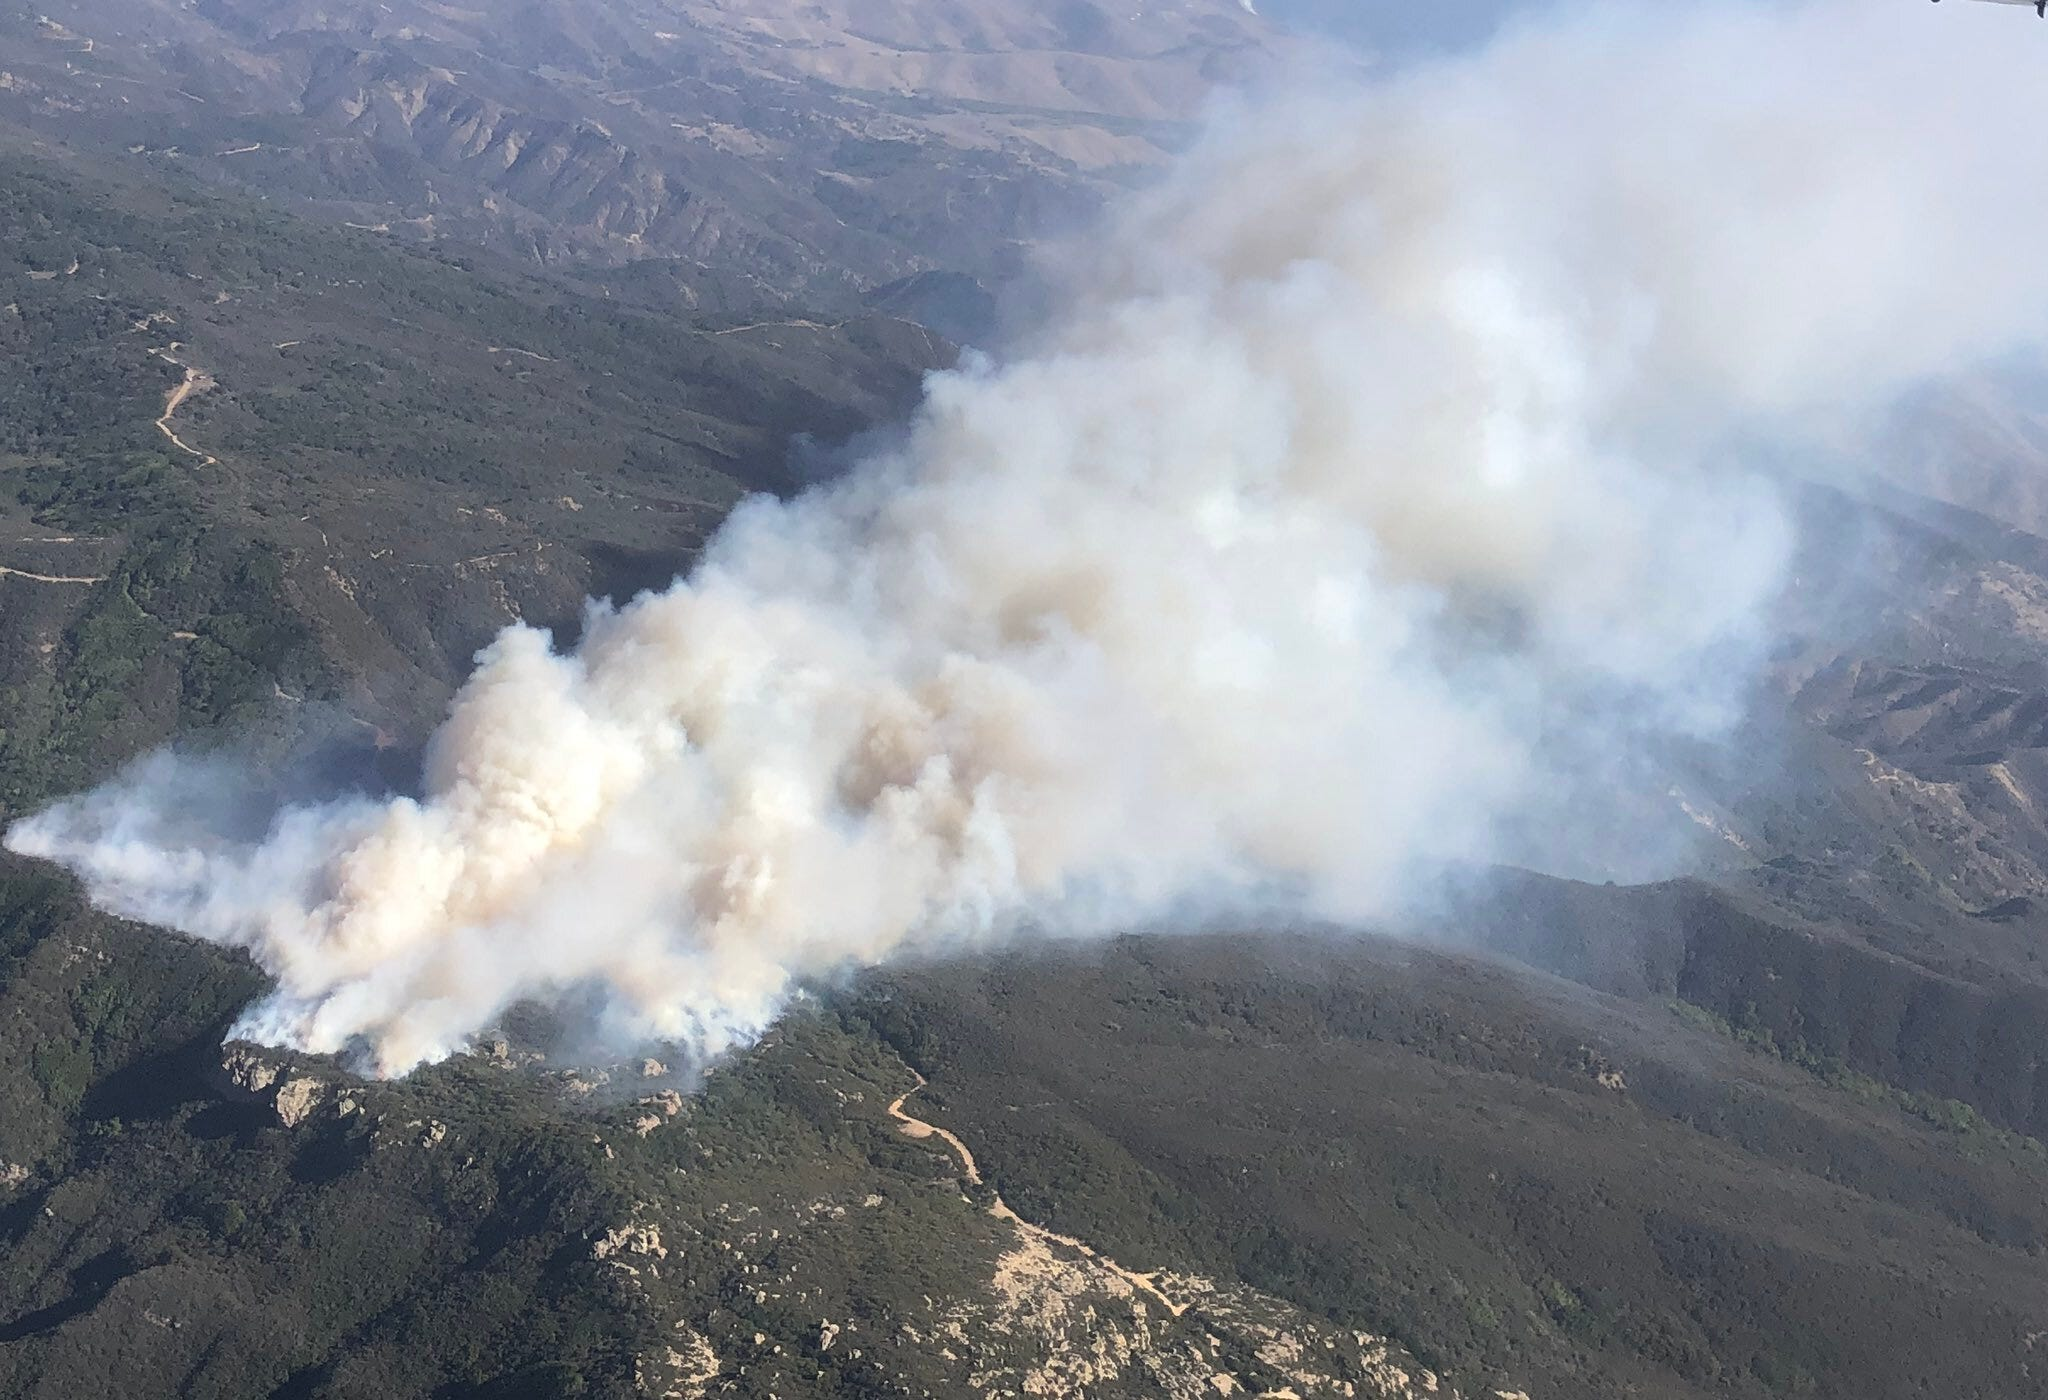 Strong winds fan California wildfires leaving one man burned; Alisal Fire near Santa Barbara burns thousands of acres